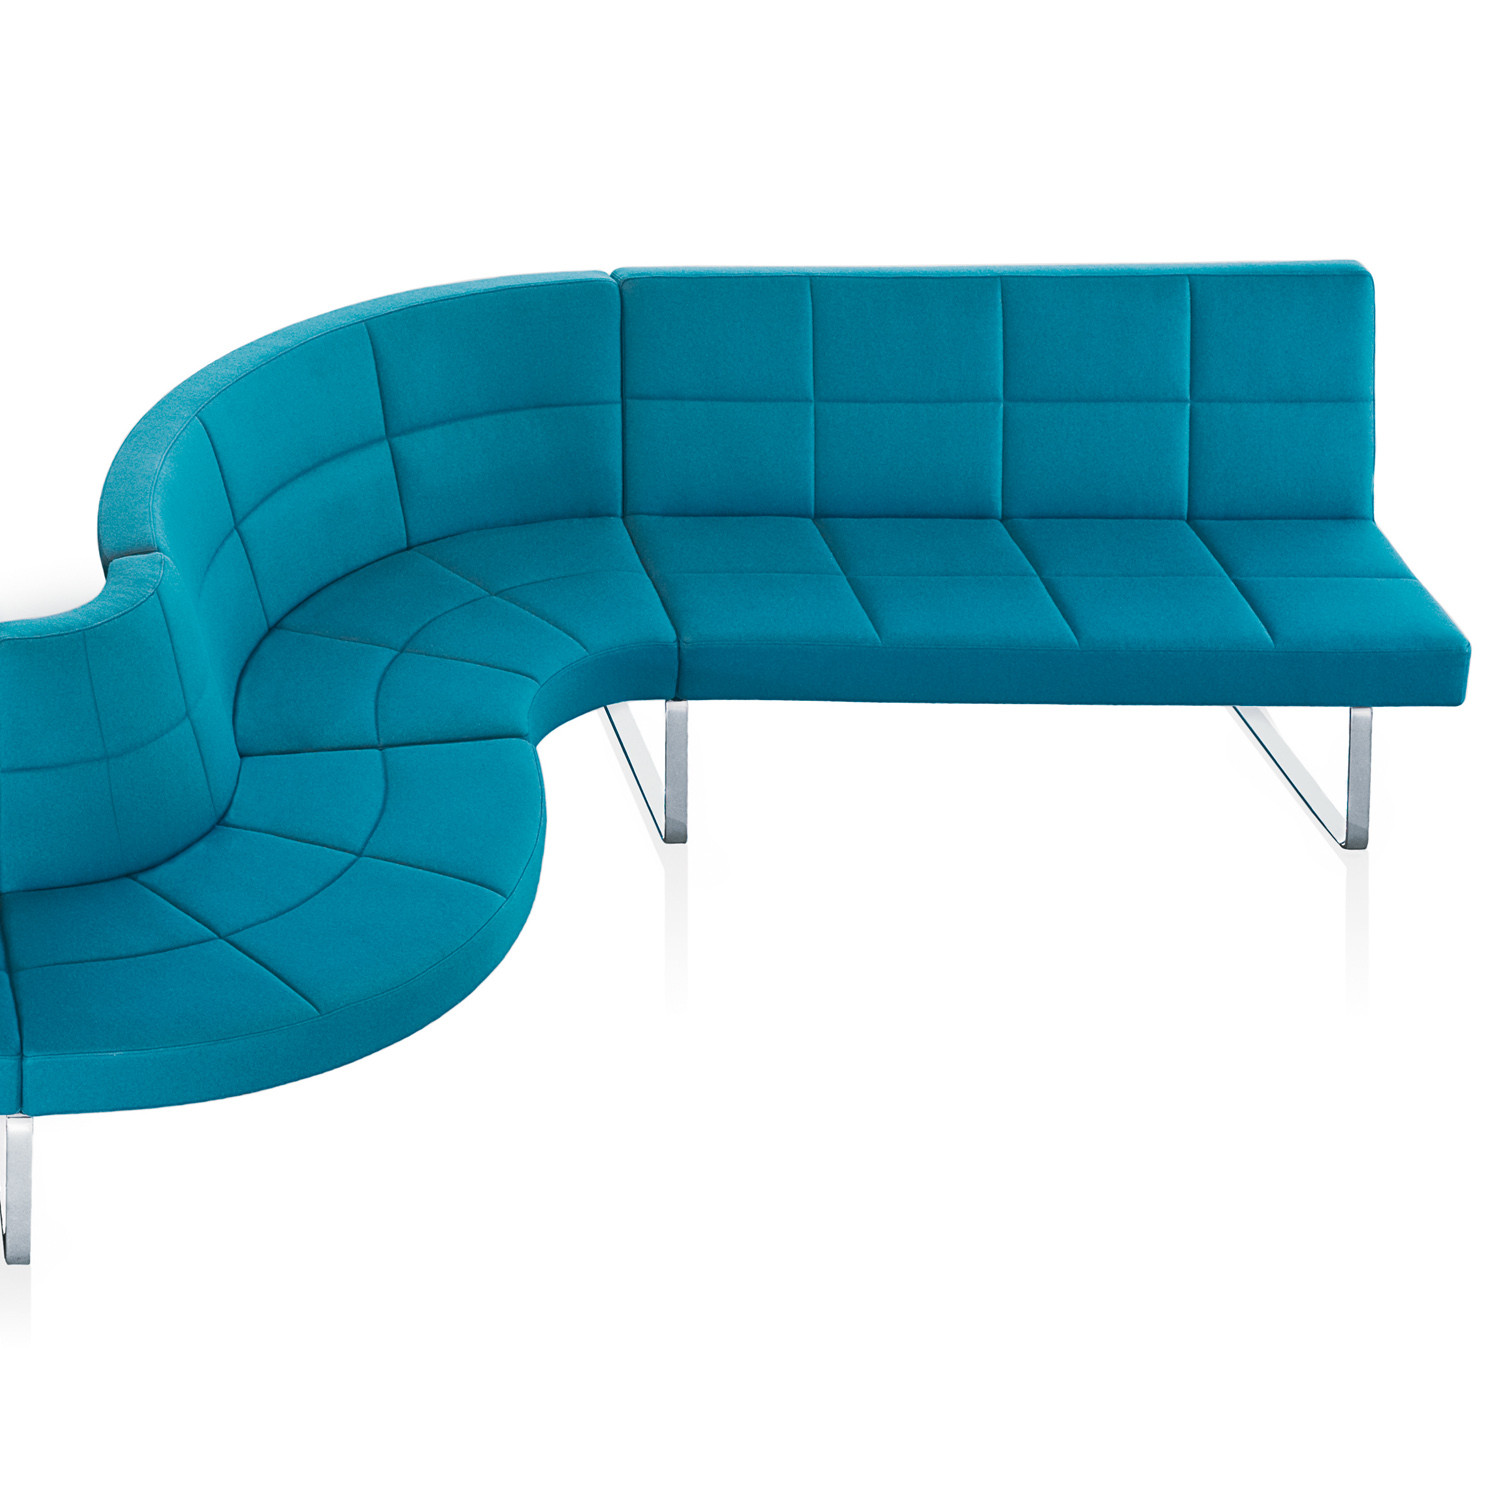 Grato Modular Seating with Sled-Base Frame